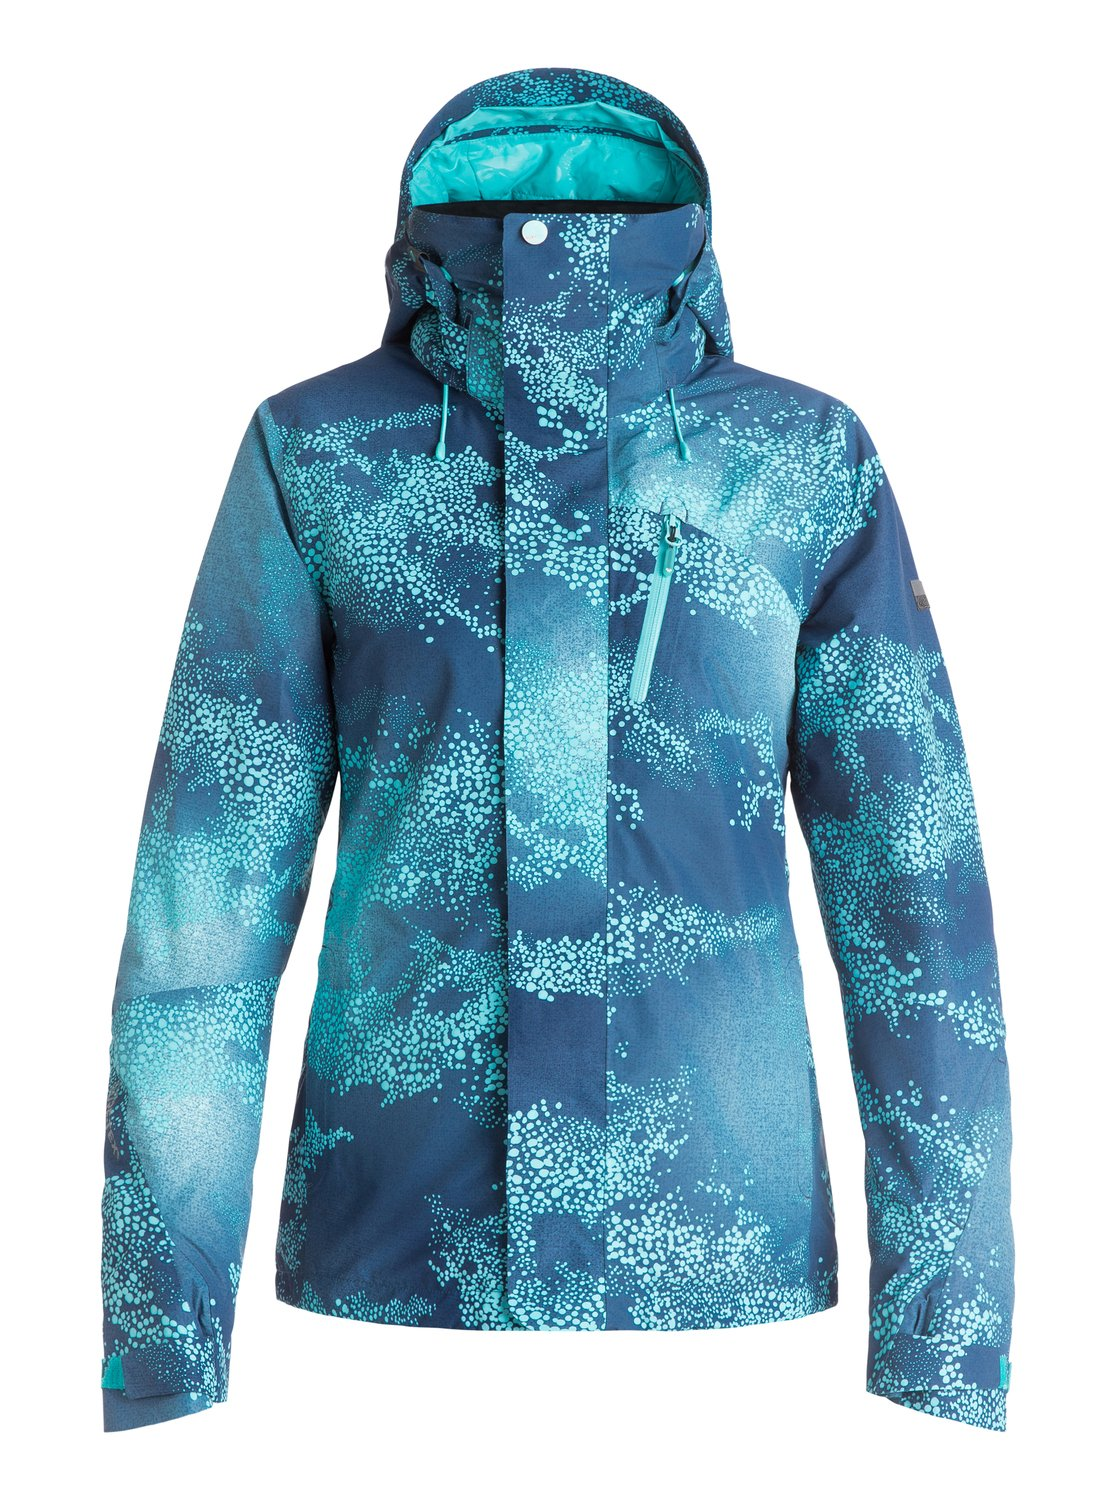 Сноубордическая куртка Wilder Printed 2L GORE-TEX®The Wilder Printed GORE-TEX® 2L snow jacket for women has been designed for powder hounds, the industry-leading, fully-sealed 2-layer waterproof membrane has been insulated with PrimaLoft® Black Insulation Eco for unbeatable warmth and comes complete with a YKK® Aquaguard® water repellent zips, waterproof chest pocket and the GORE-TEX® guaranteed to keep you dry promise so you stay dry when youre chest deep in the backcountry. A host of premium features, easy-to-access pockets and a helmet compatible hood ensure nothing comes between you and that big mountain line while the modern print, distinctly feminine design and tailored fit give this high-performance piece unparalleled style. Includes a ROXY X Biotherm® Enjoy &amp;amp; Care neck warmer that cares for your skin by releasing a high performance complex to keep skin soft and moisturised in harsh mountain conditions.<br>